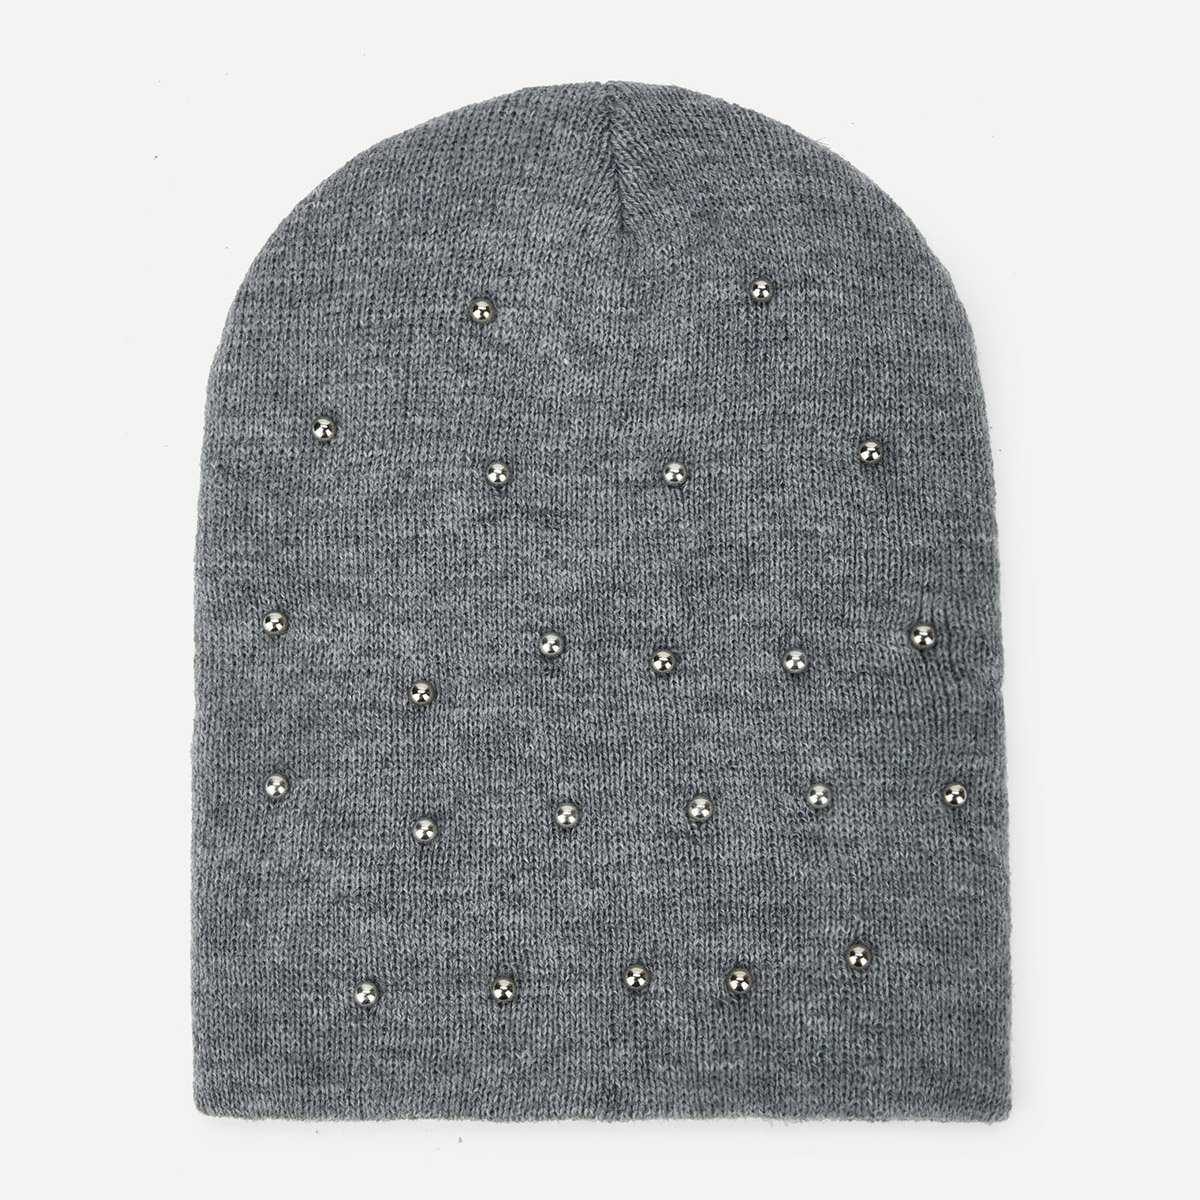 Metal Decorated Beanie Hat - Shein - GOOFASH